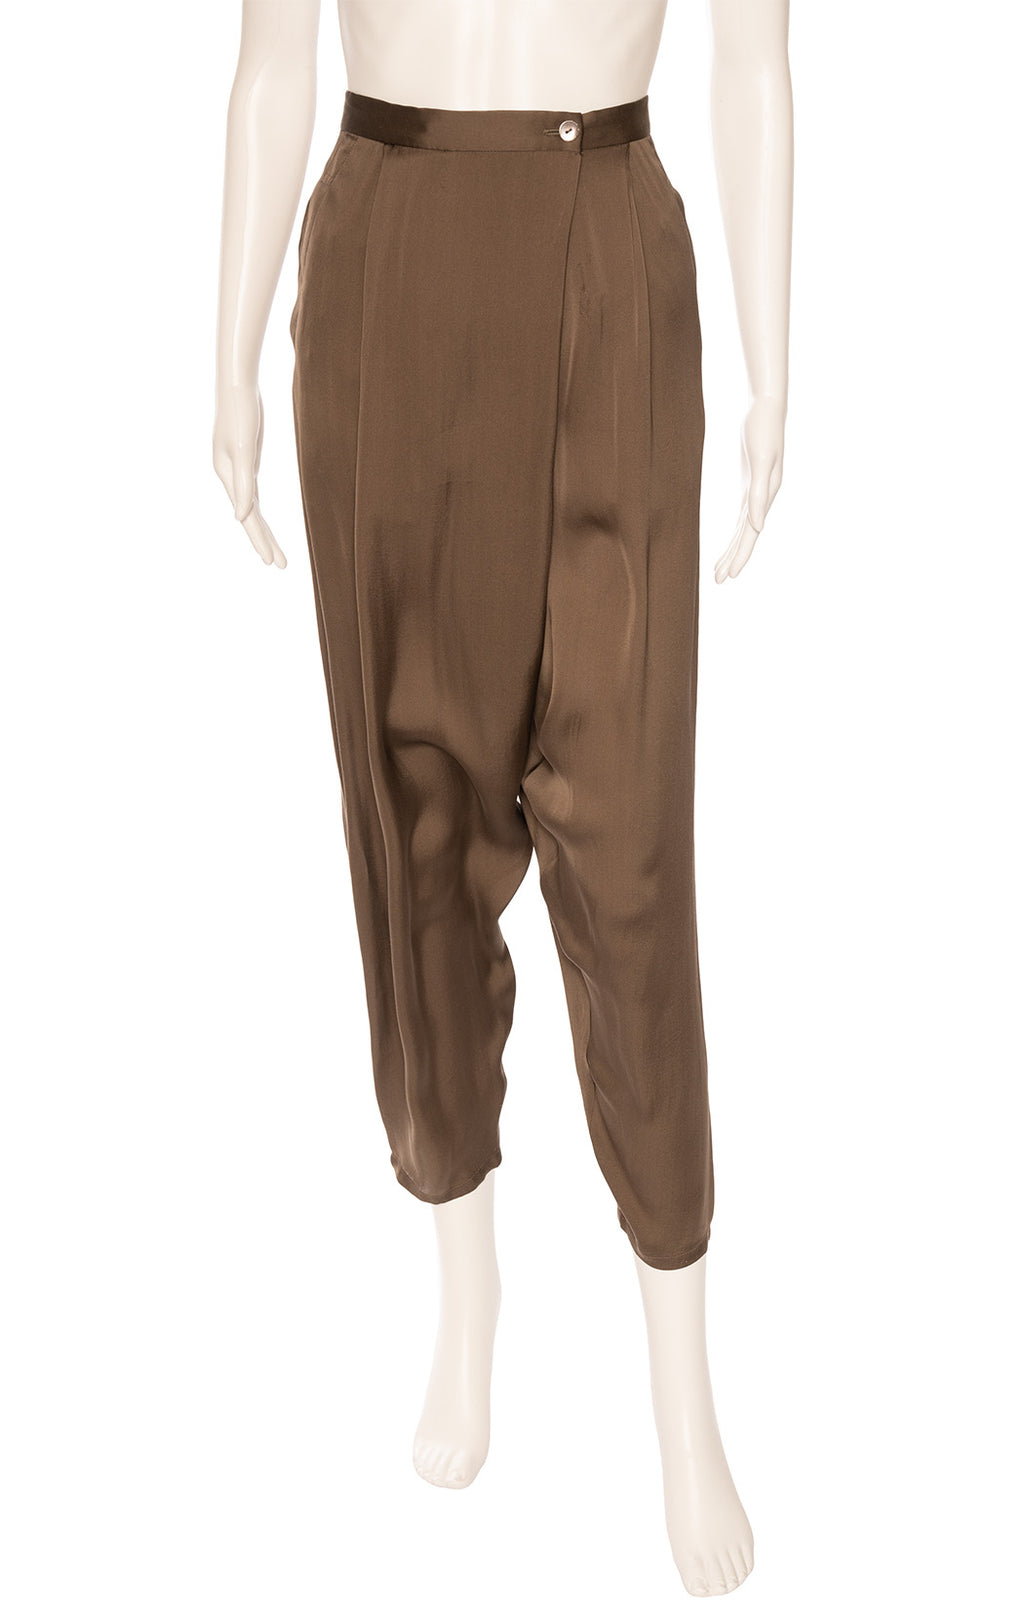 STELLA MCCARTNEY  Pants Size: IT 38 (comparable to US 0)